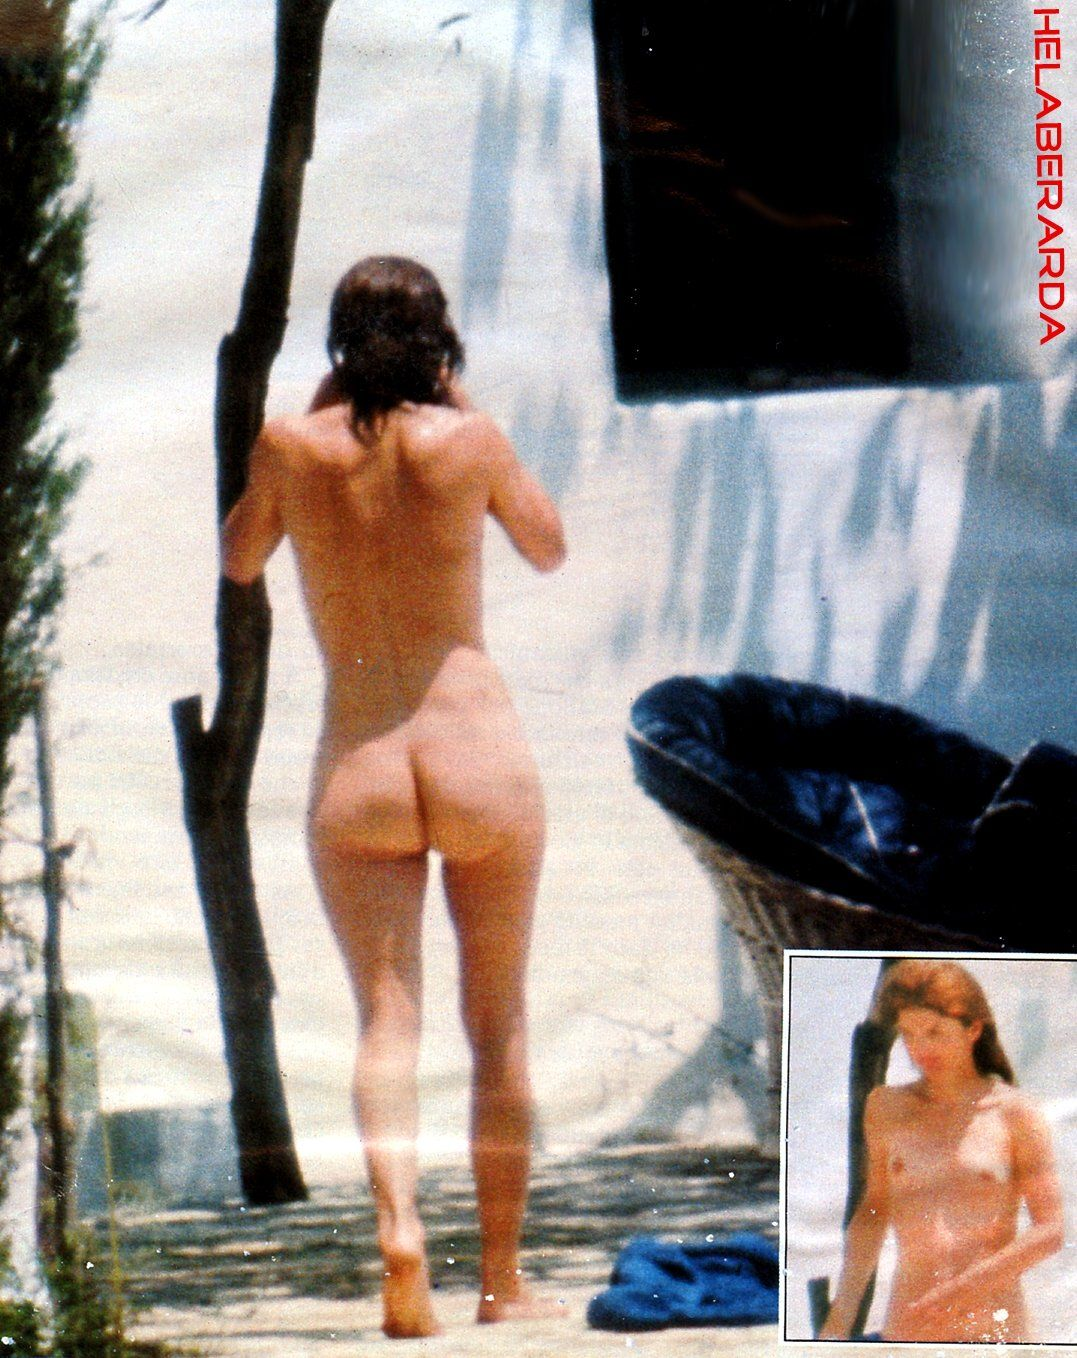 Killer F. reccomend The hustler jackie kennedy nude photos